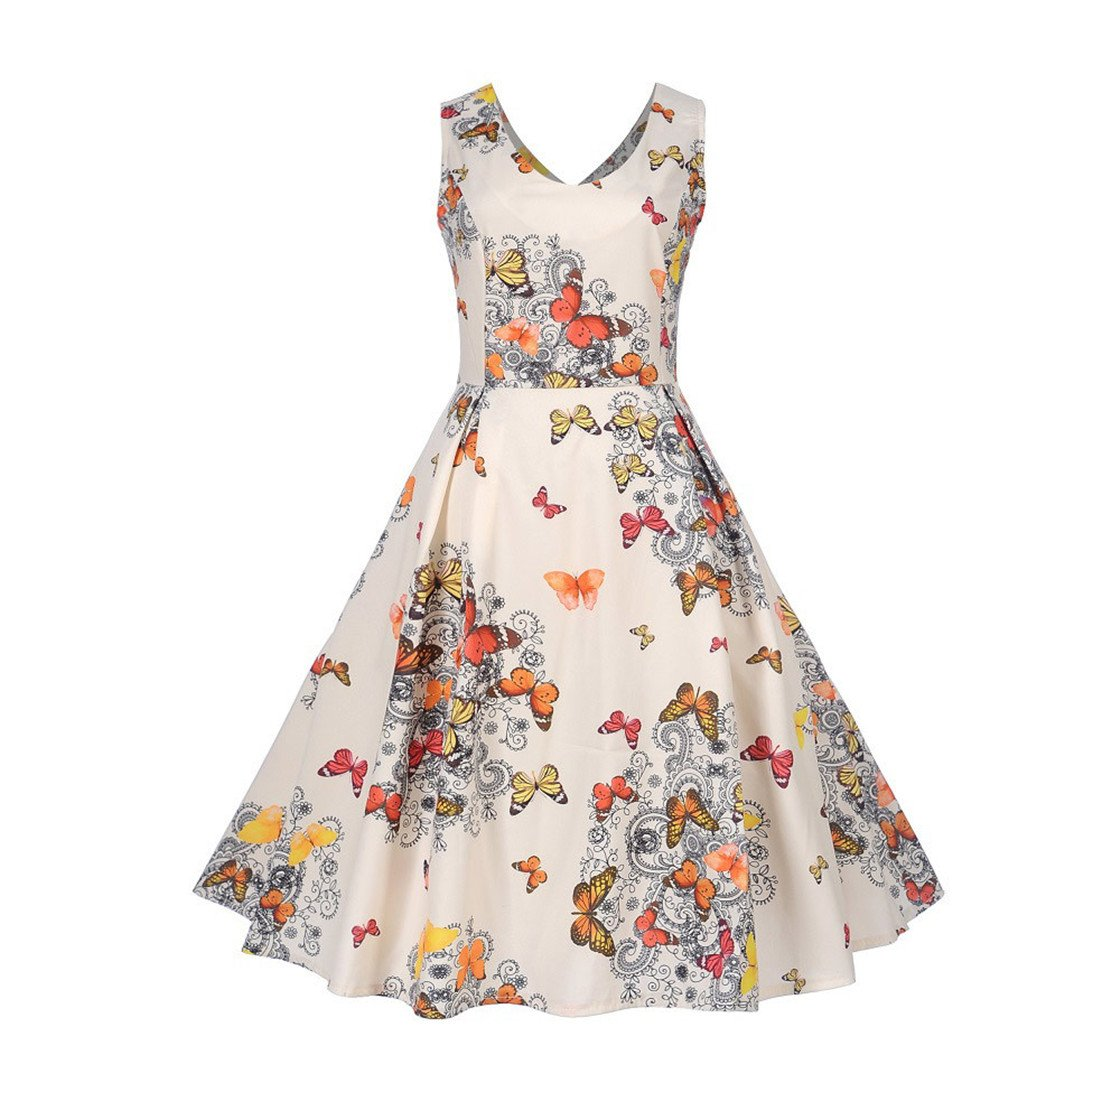 Mose Dresses For Women Party,New!!❃❤️❃!Hot Women's Vintage Printing Bodycon Sleeveless Empire Evening Party Tops Prom Mid-Calf Swing Pleated Dress (L, Beige)